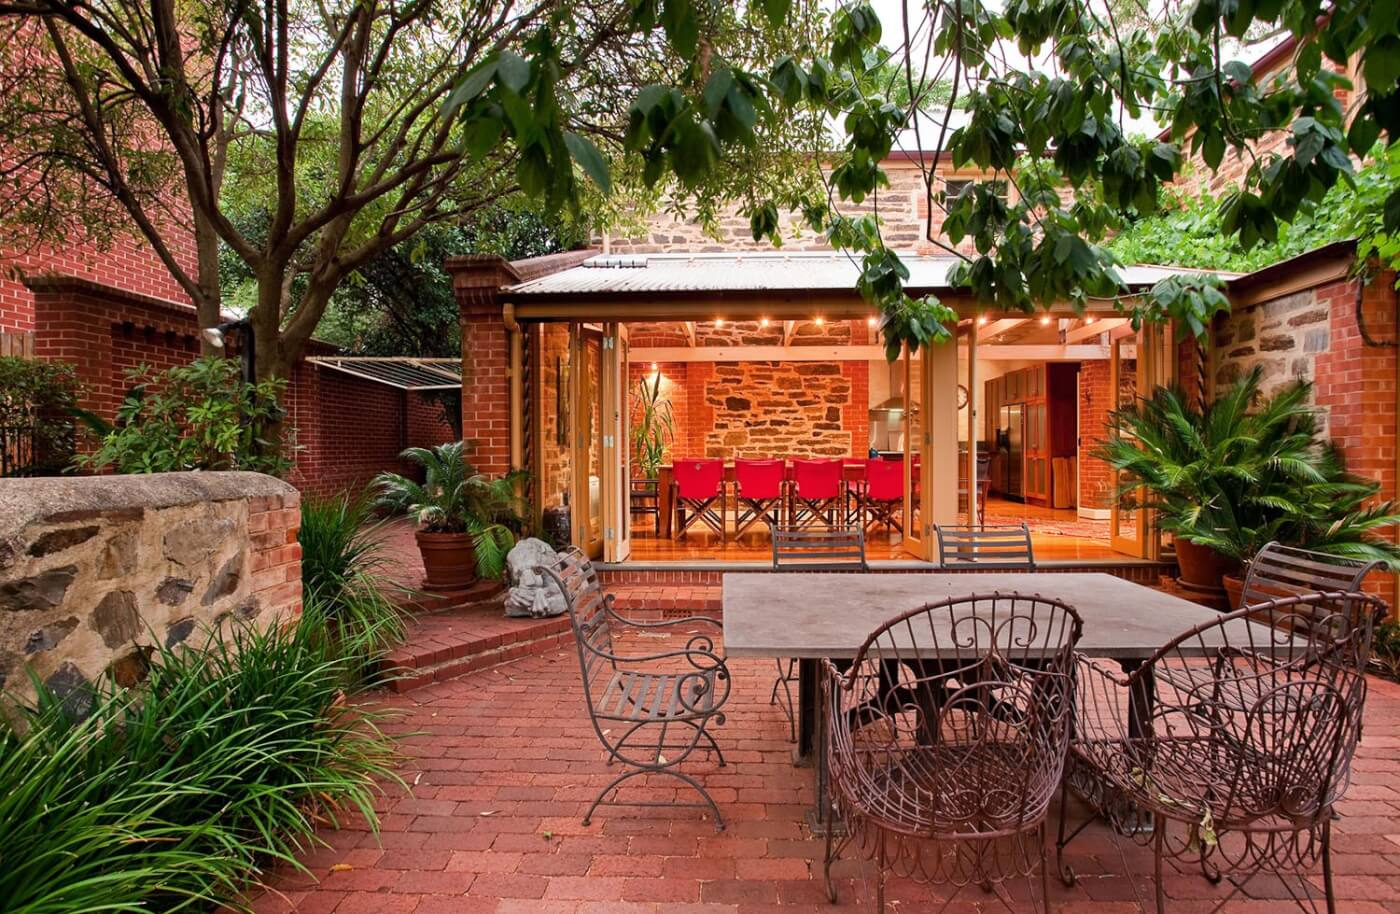 Old Red Pavers In Outdoor Entertaining Area Of Heritage Home